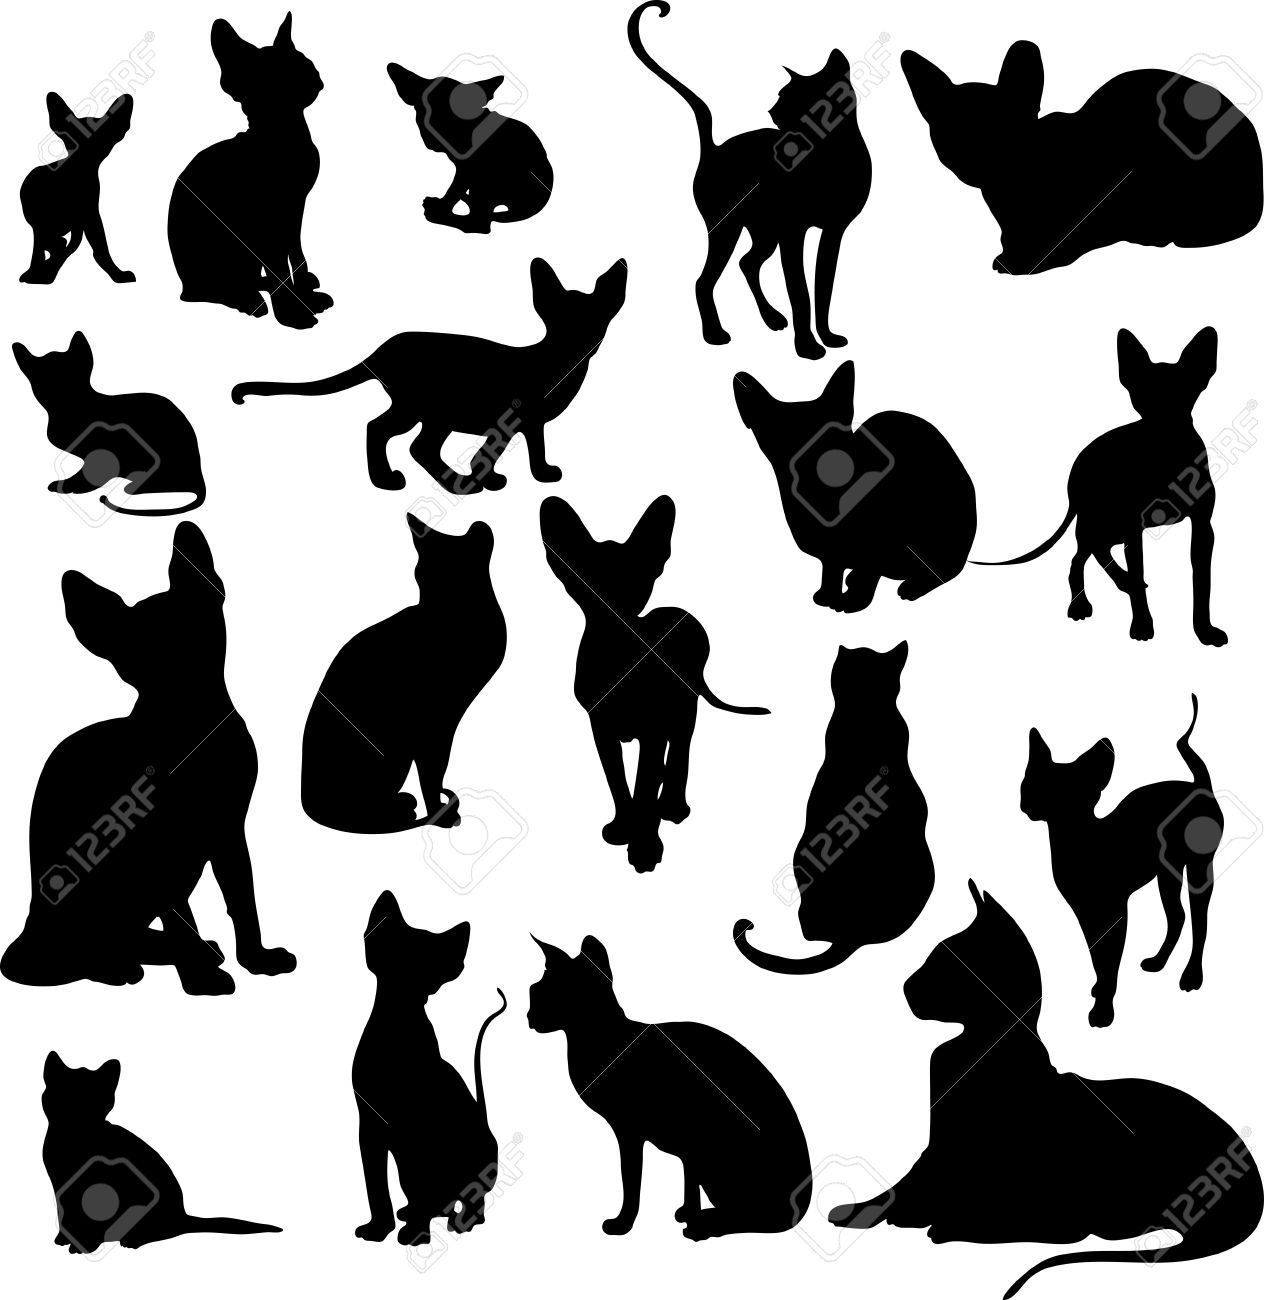 Sphynx Cat clipart #10, Download drawings